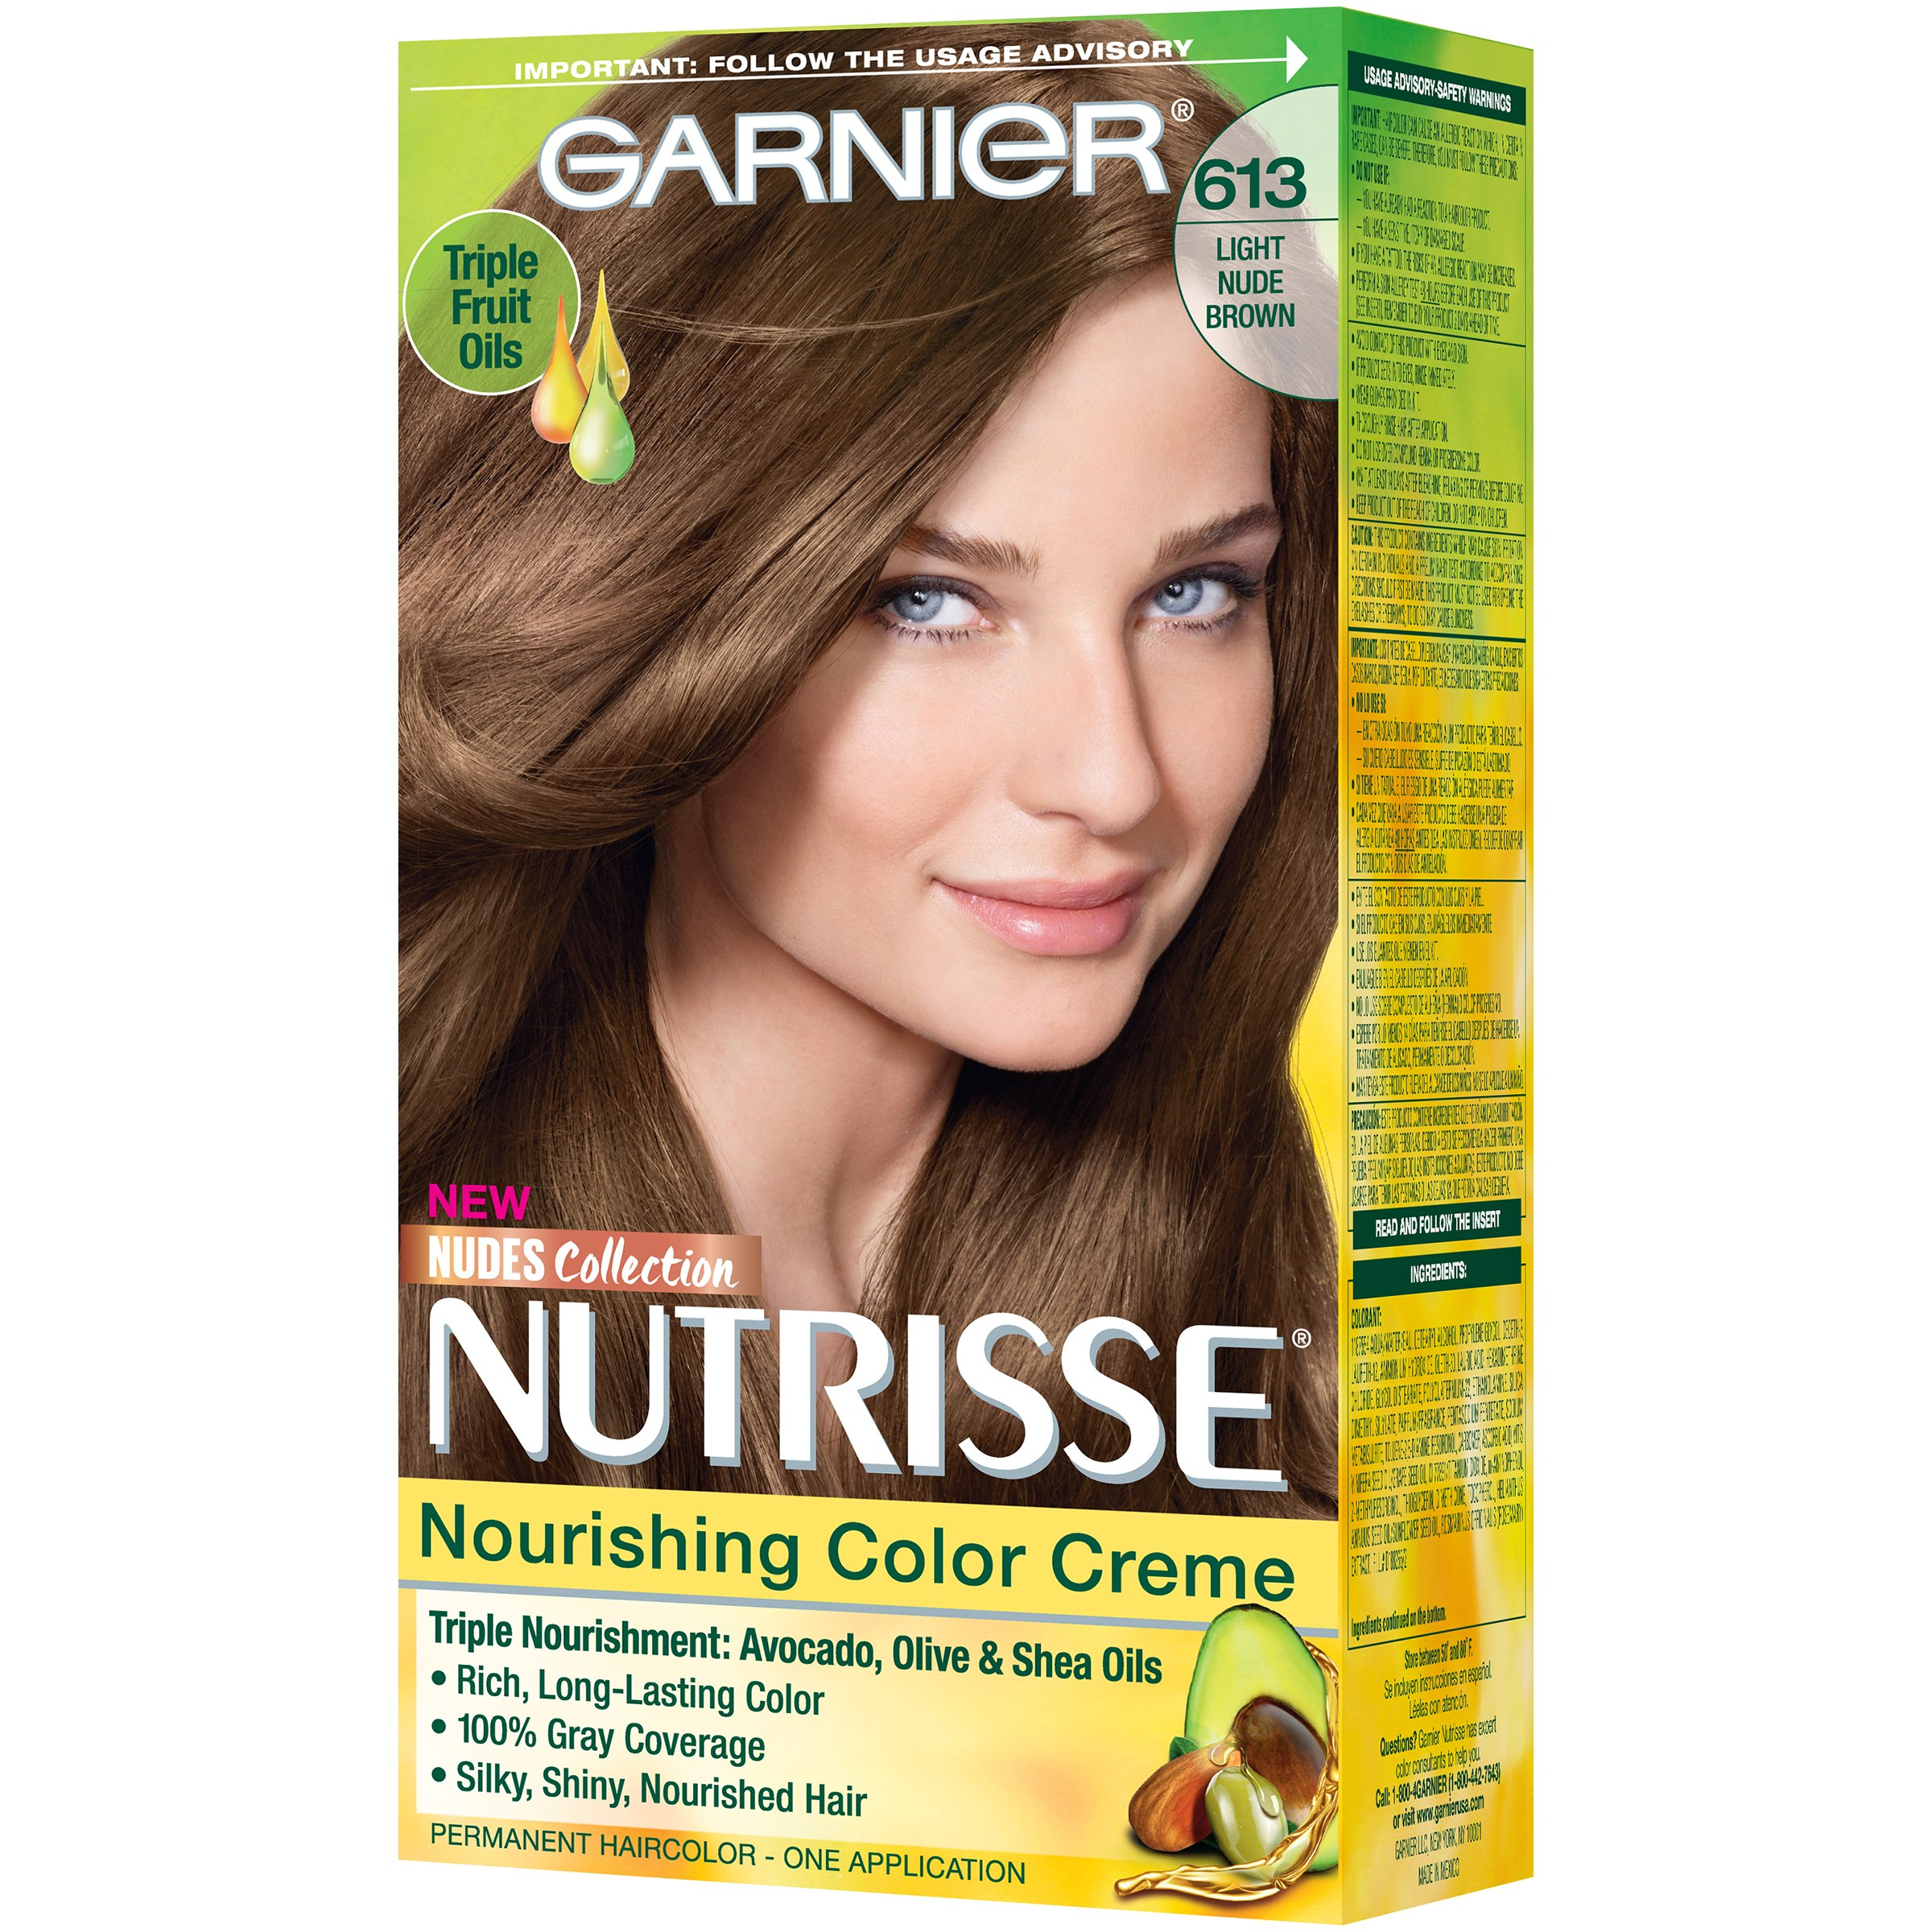 Garnier Nutrisse Nourishing Hair Color Creme Browns 51 Medium Ash